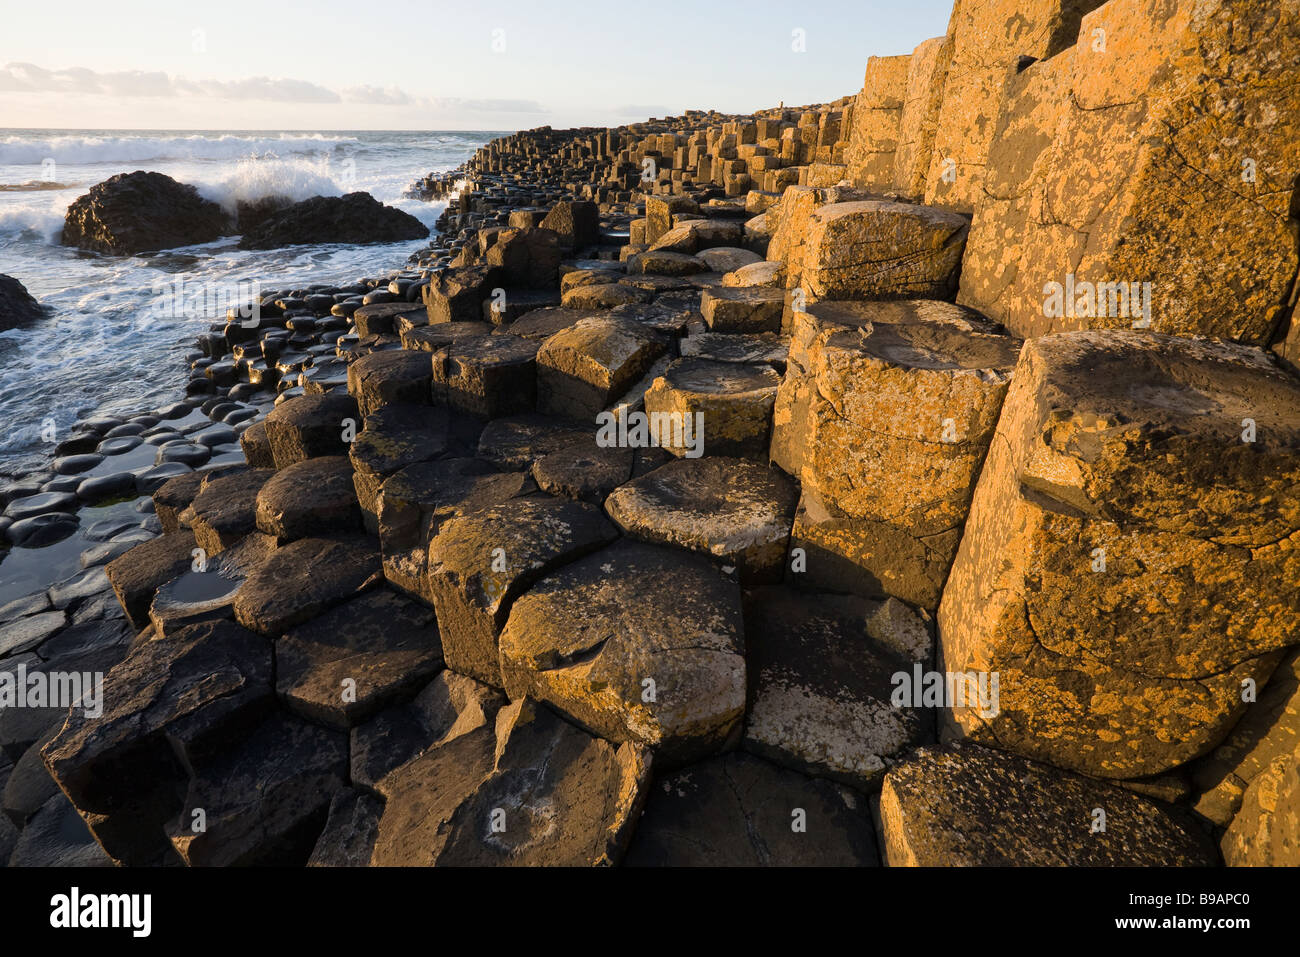 Giant's Steps Horizontal. The basalt pillars of the Giant's Causeway glow in the sun as they step down into - Stock Image